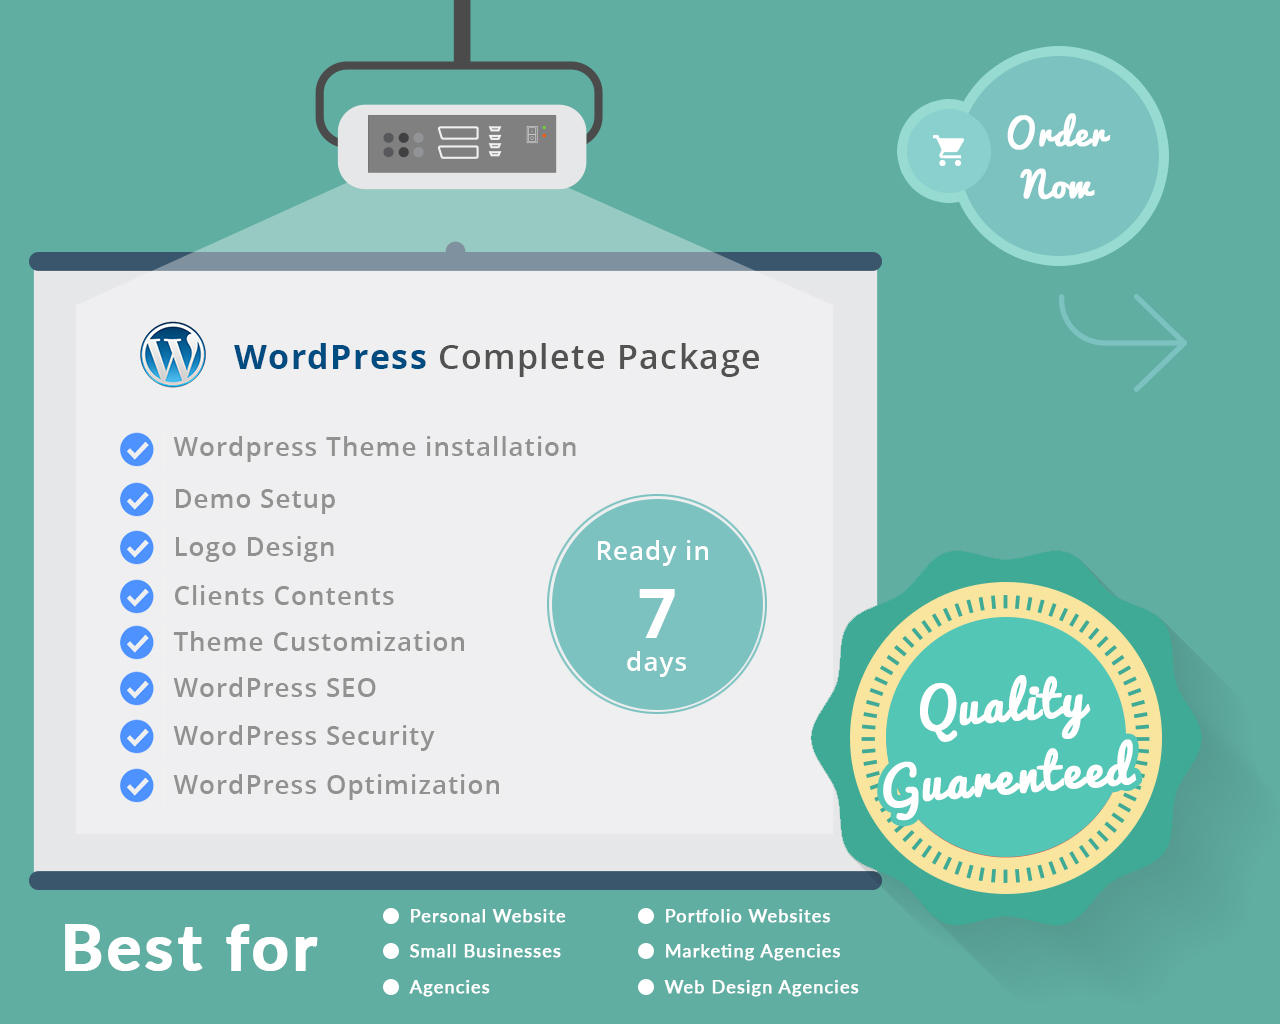 Professional & Creative WordPress Website Complete Package by iintellect - 96789